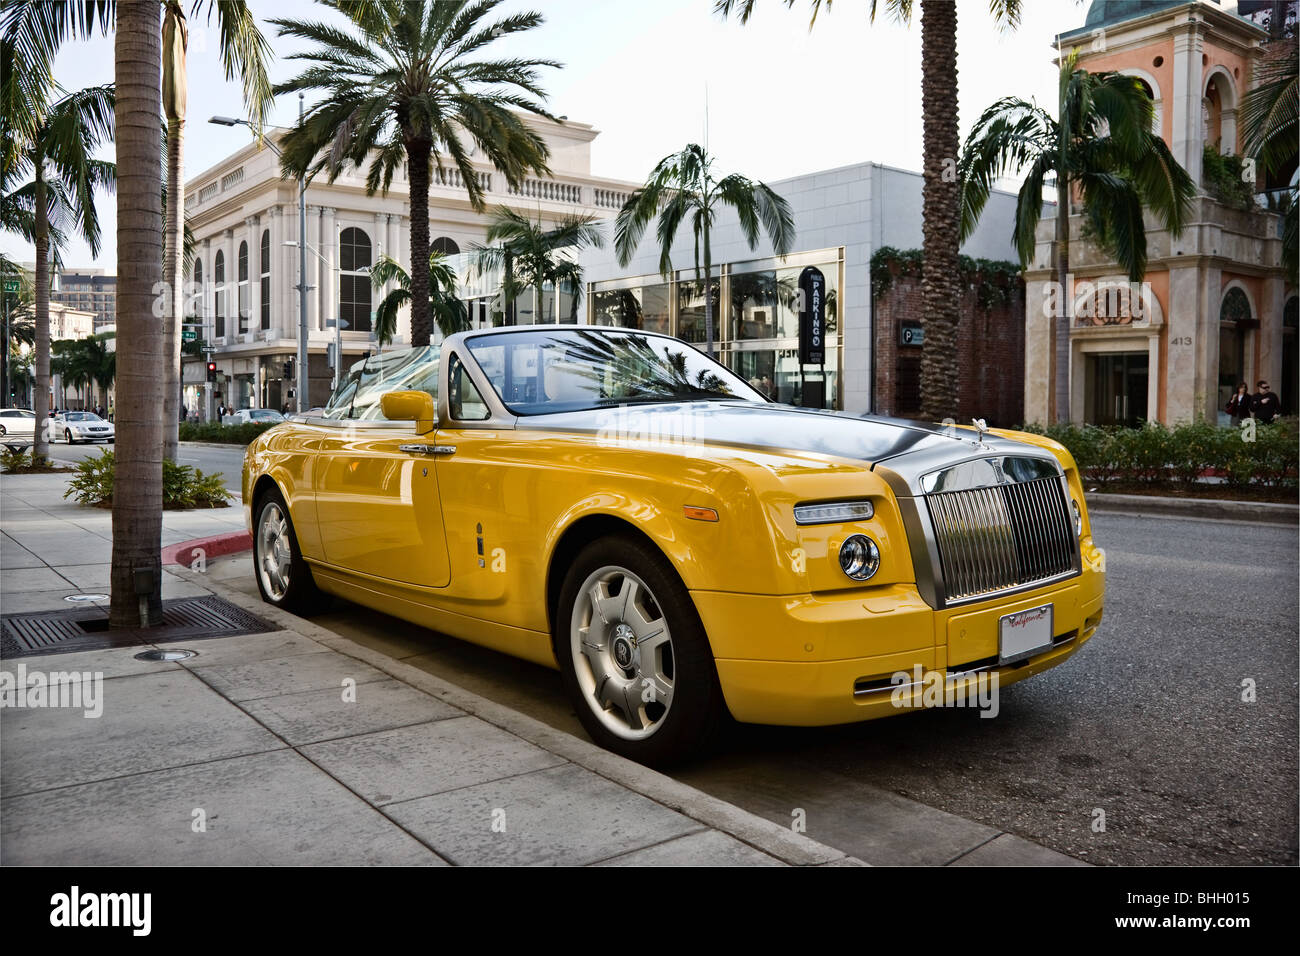 Banana Yellow Rolls Royce Convertible Stock Photo 28032737 Alamy